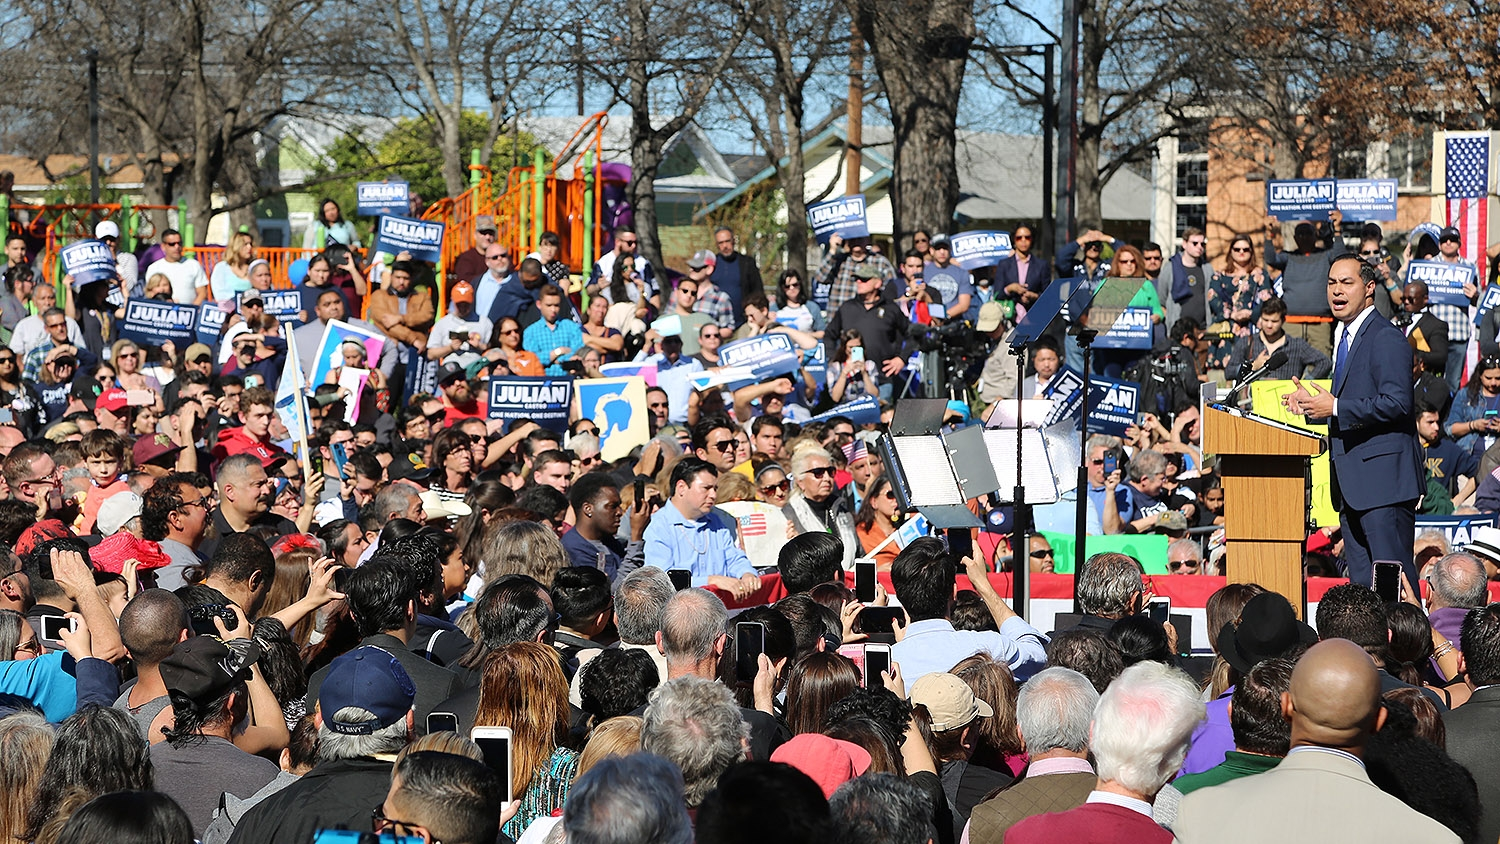 Julián Castro announces his run at the presidency of the United States Saturday morning at Plaza Guadalupe on the near West Side. Photo: Ben Olivo | Heron